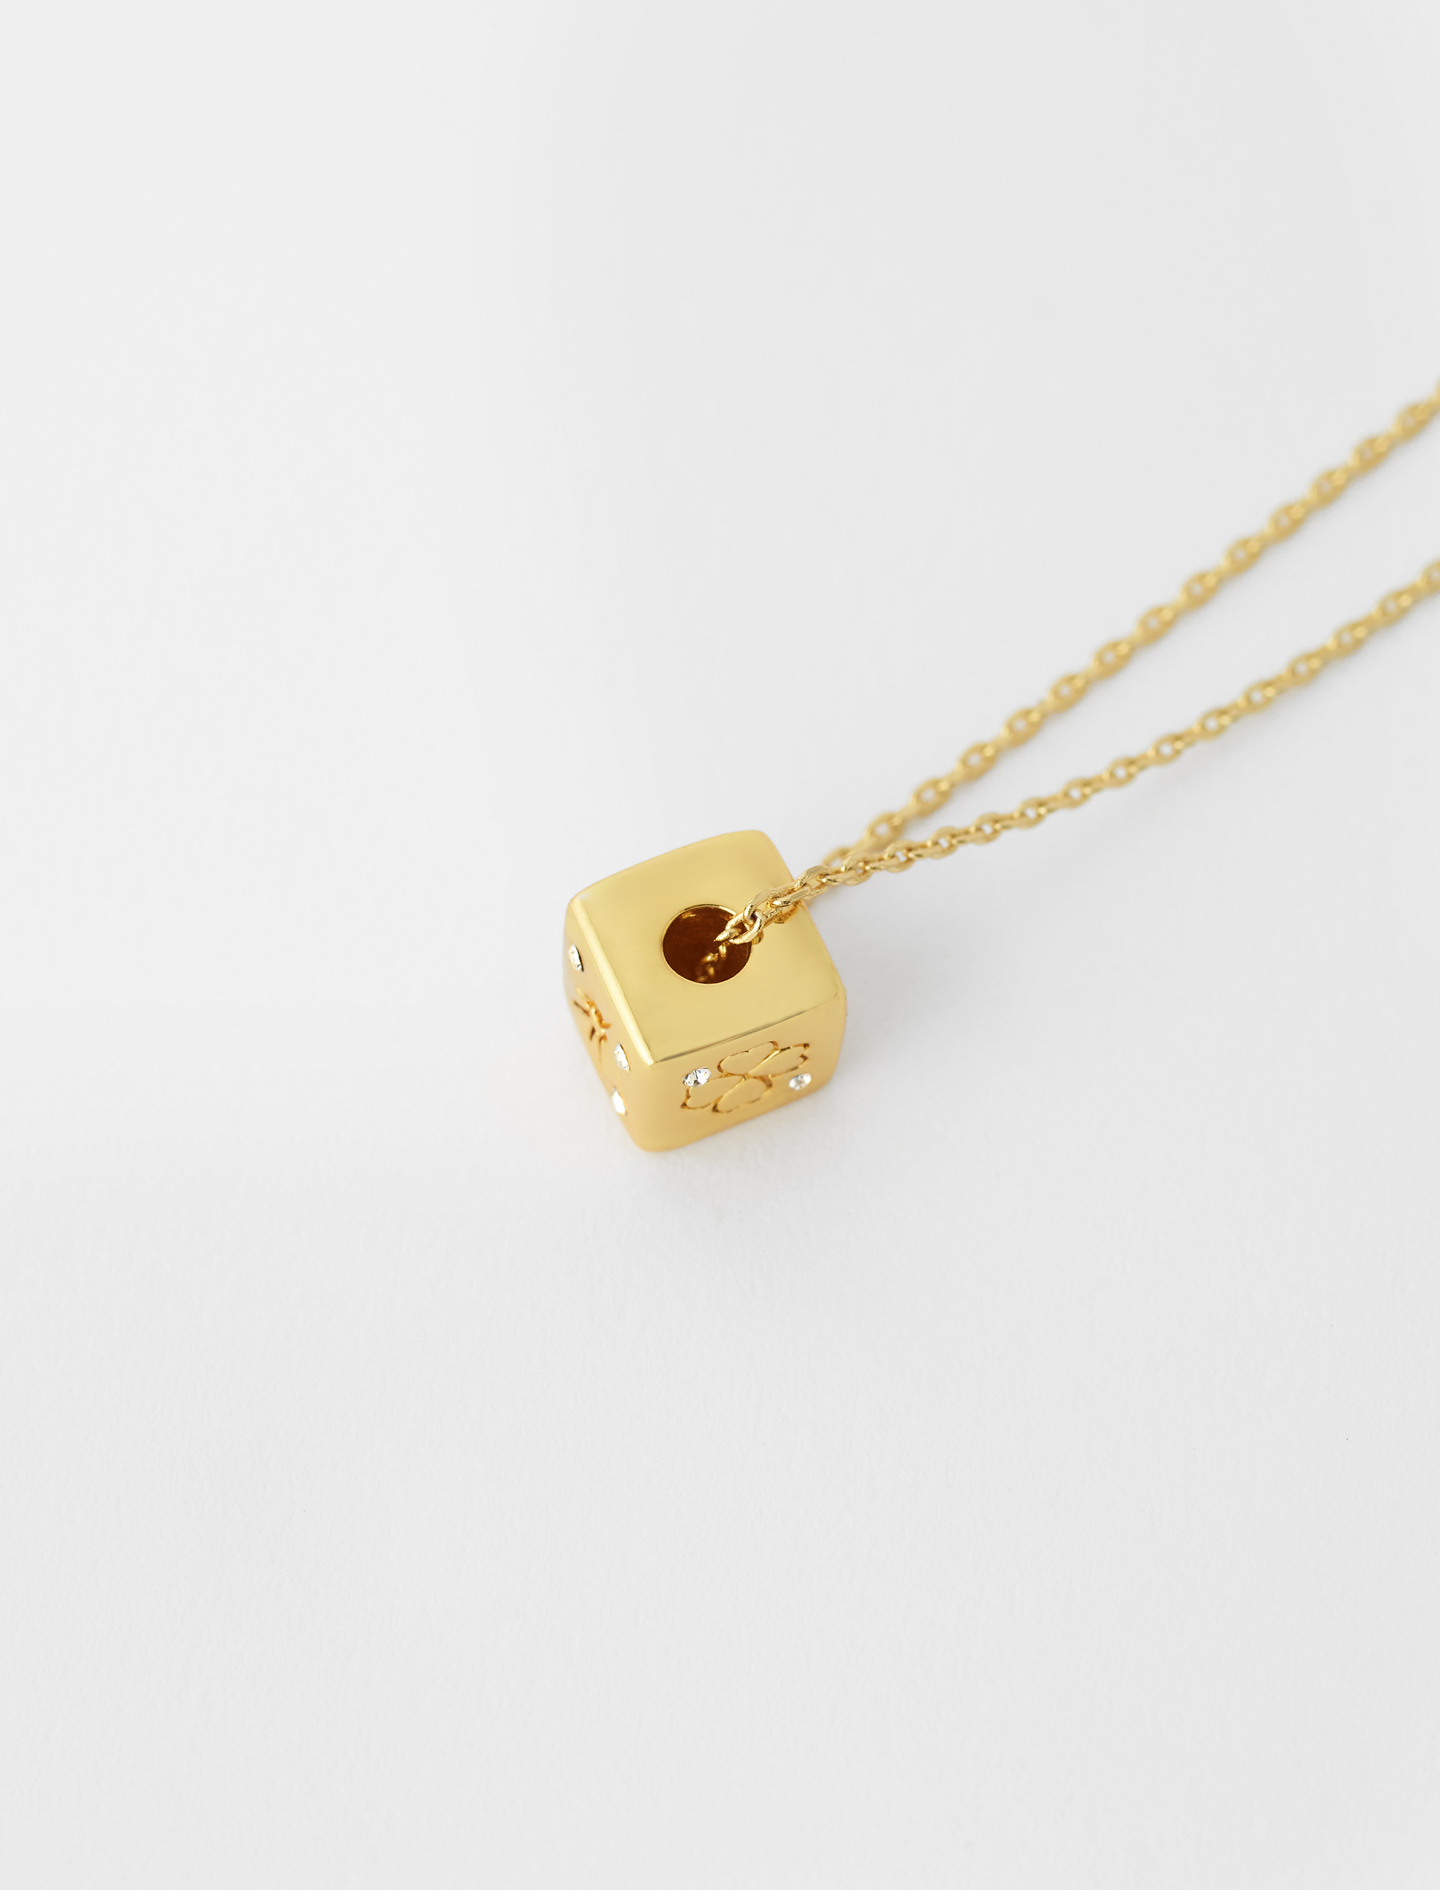 Number 8 dice necklace - Gold